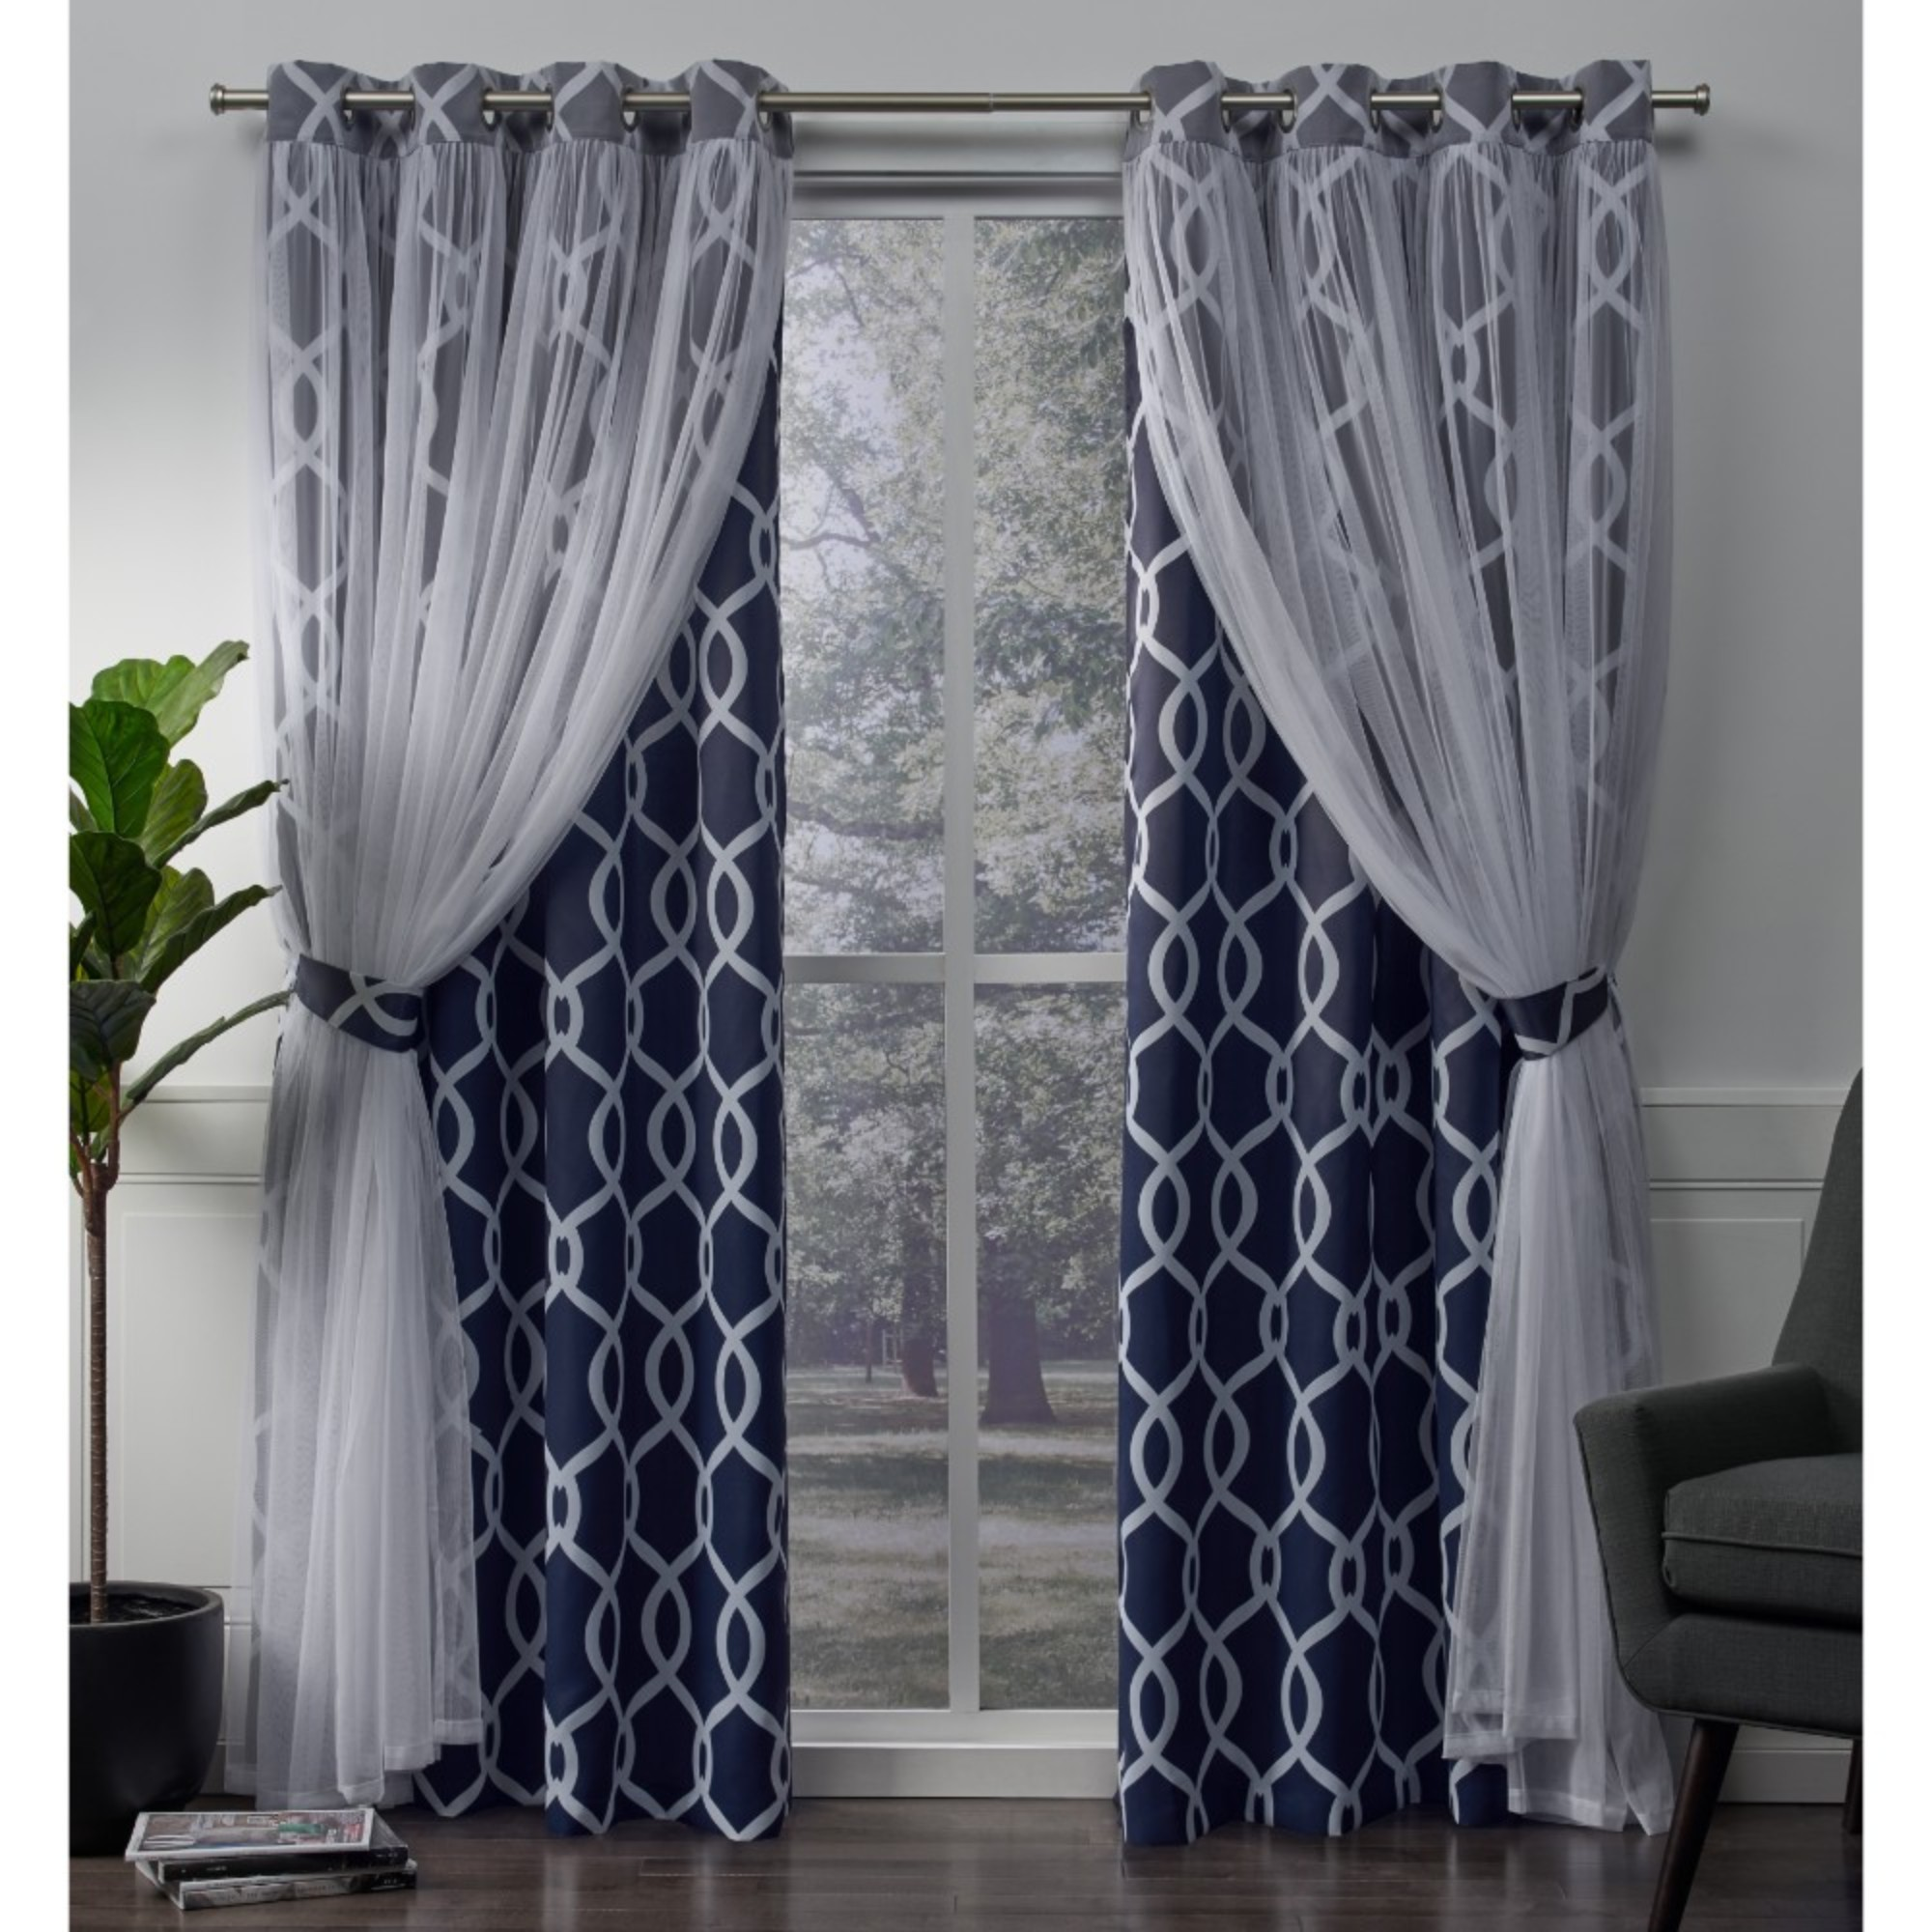 Exclusive Home Curtains 2 Pack Carmela Layered Geometric Blackout and Sheer Grommet Top Curtain Panels